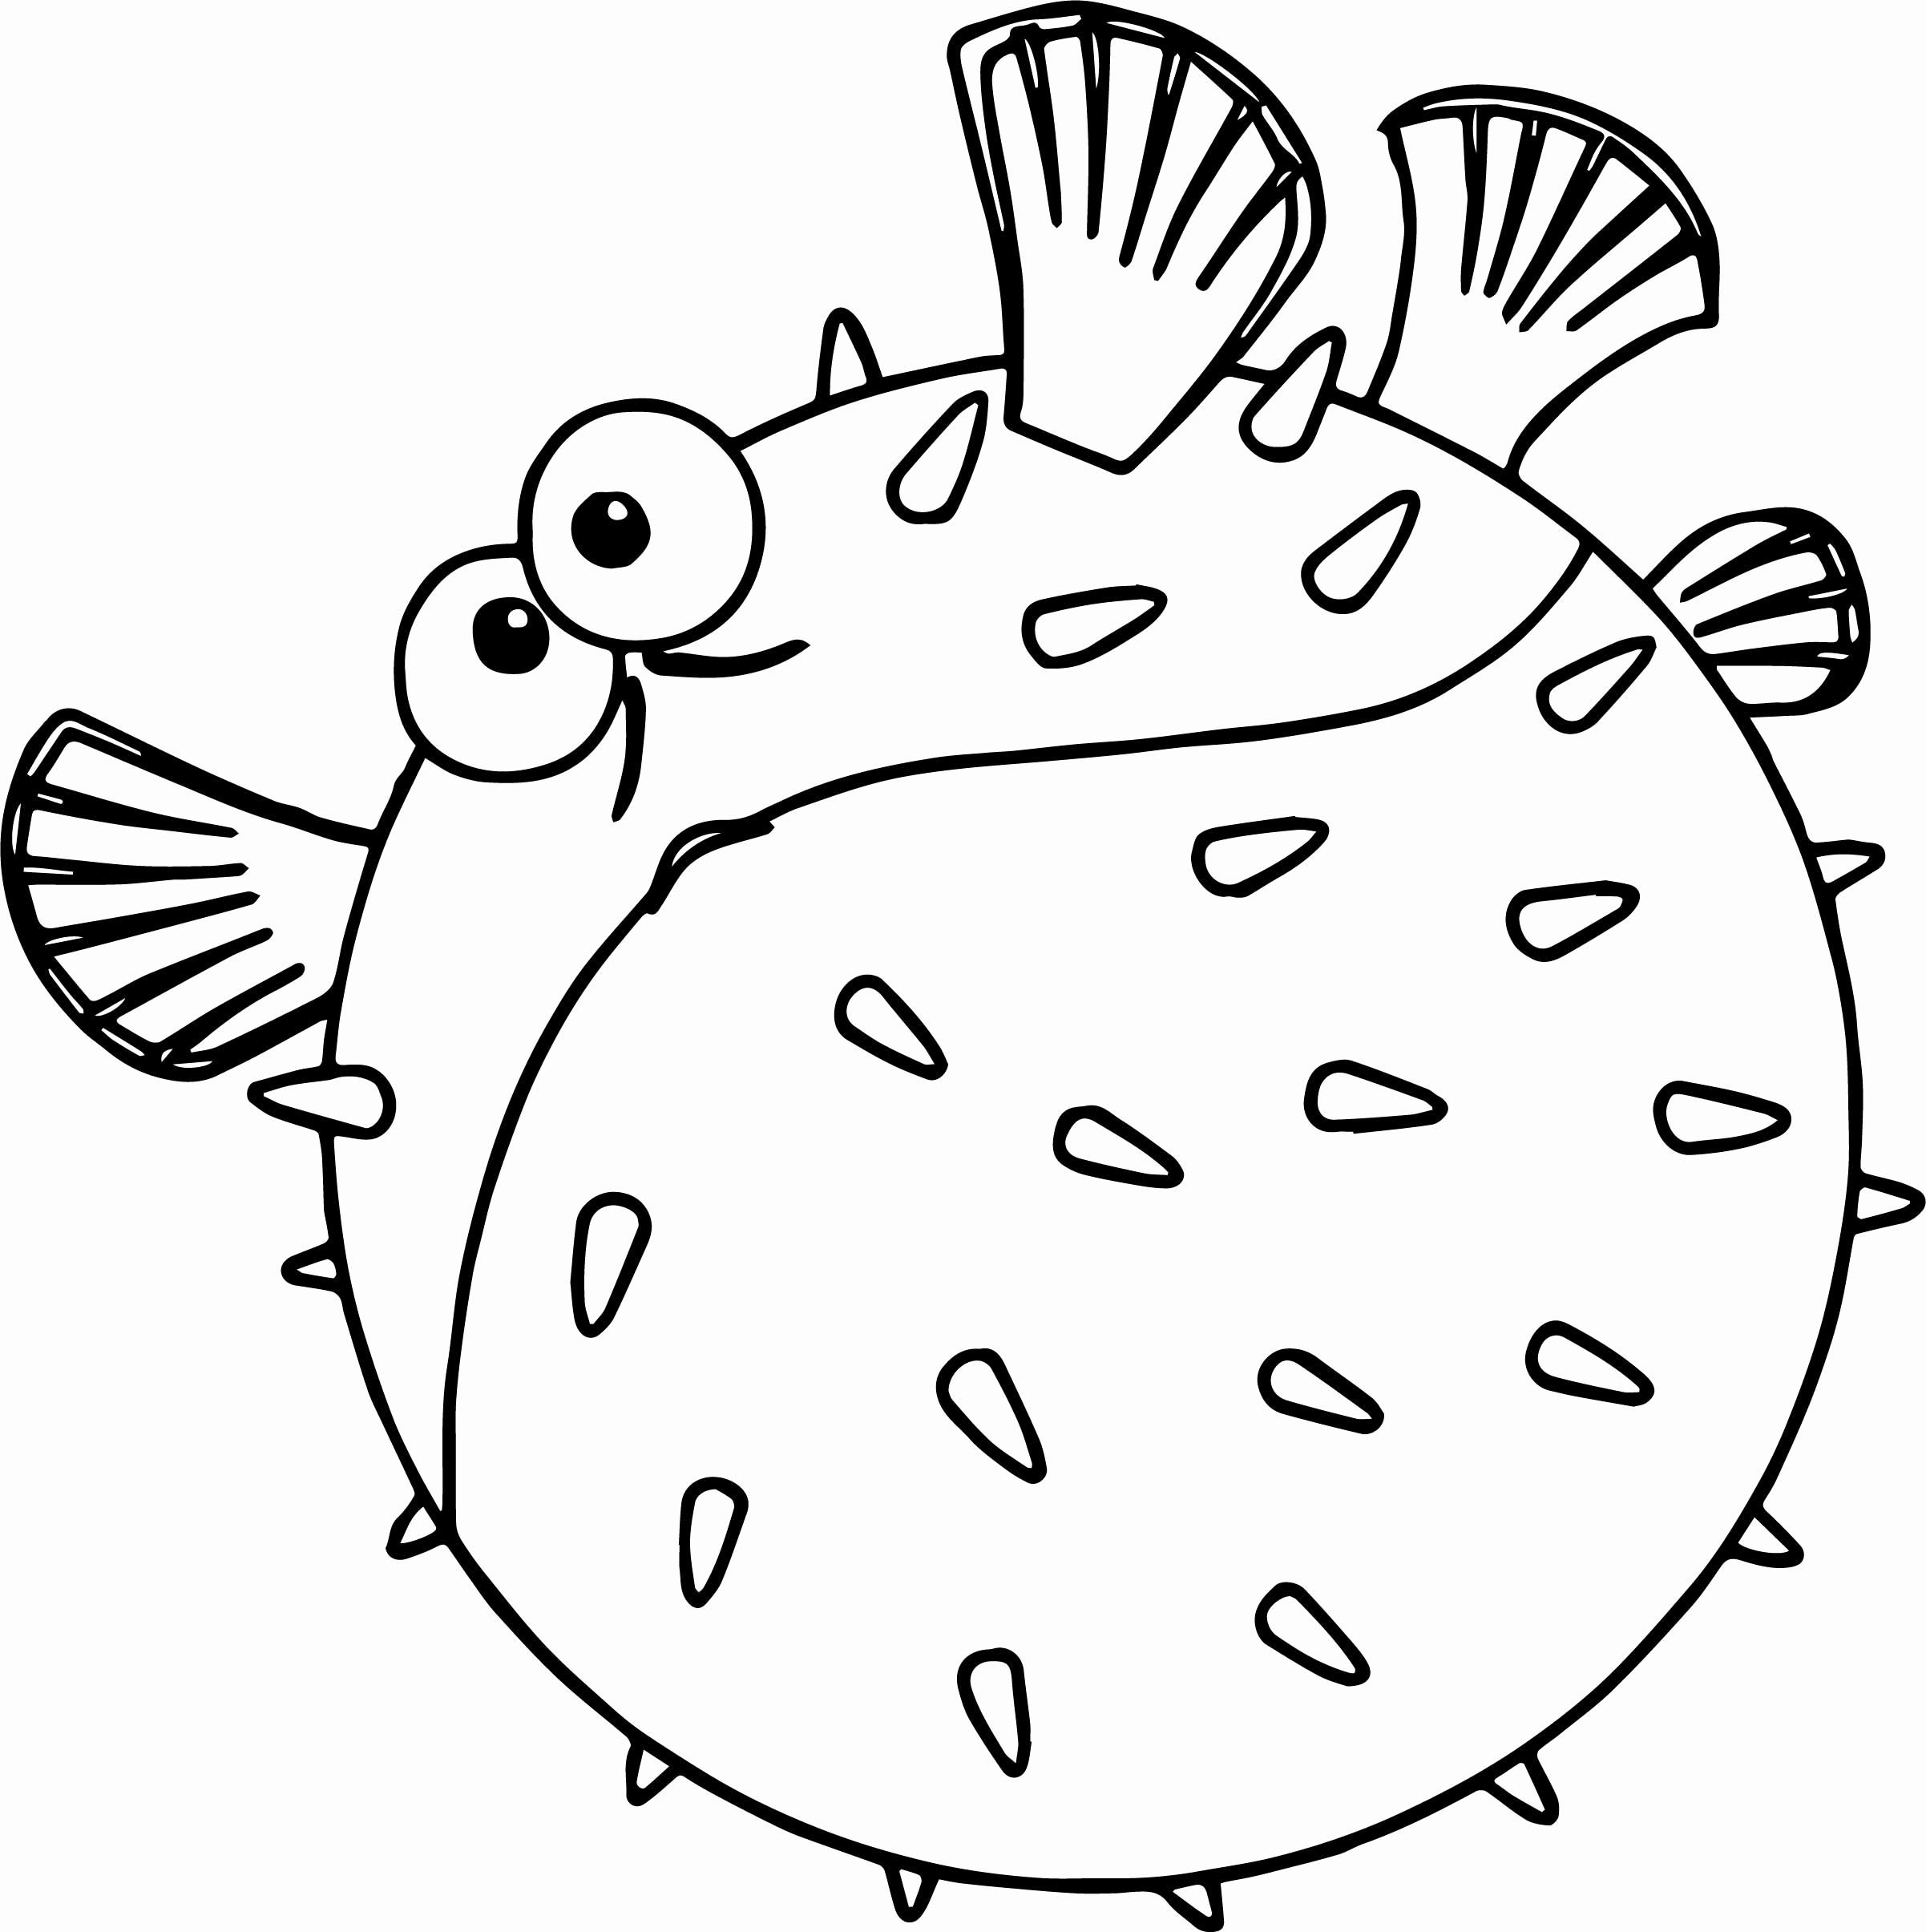 2403x2410 Finding Nemo Coloring Pages Inspirational Disney Finding Nemobloat